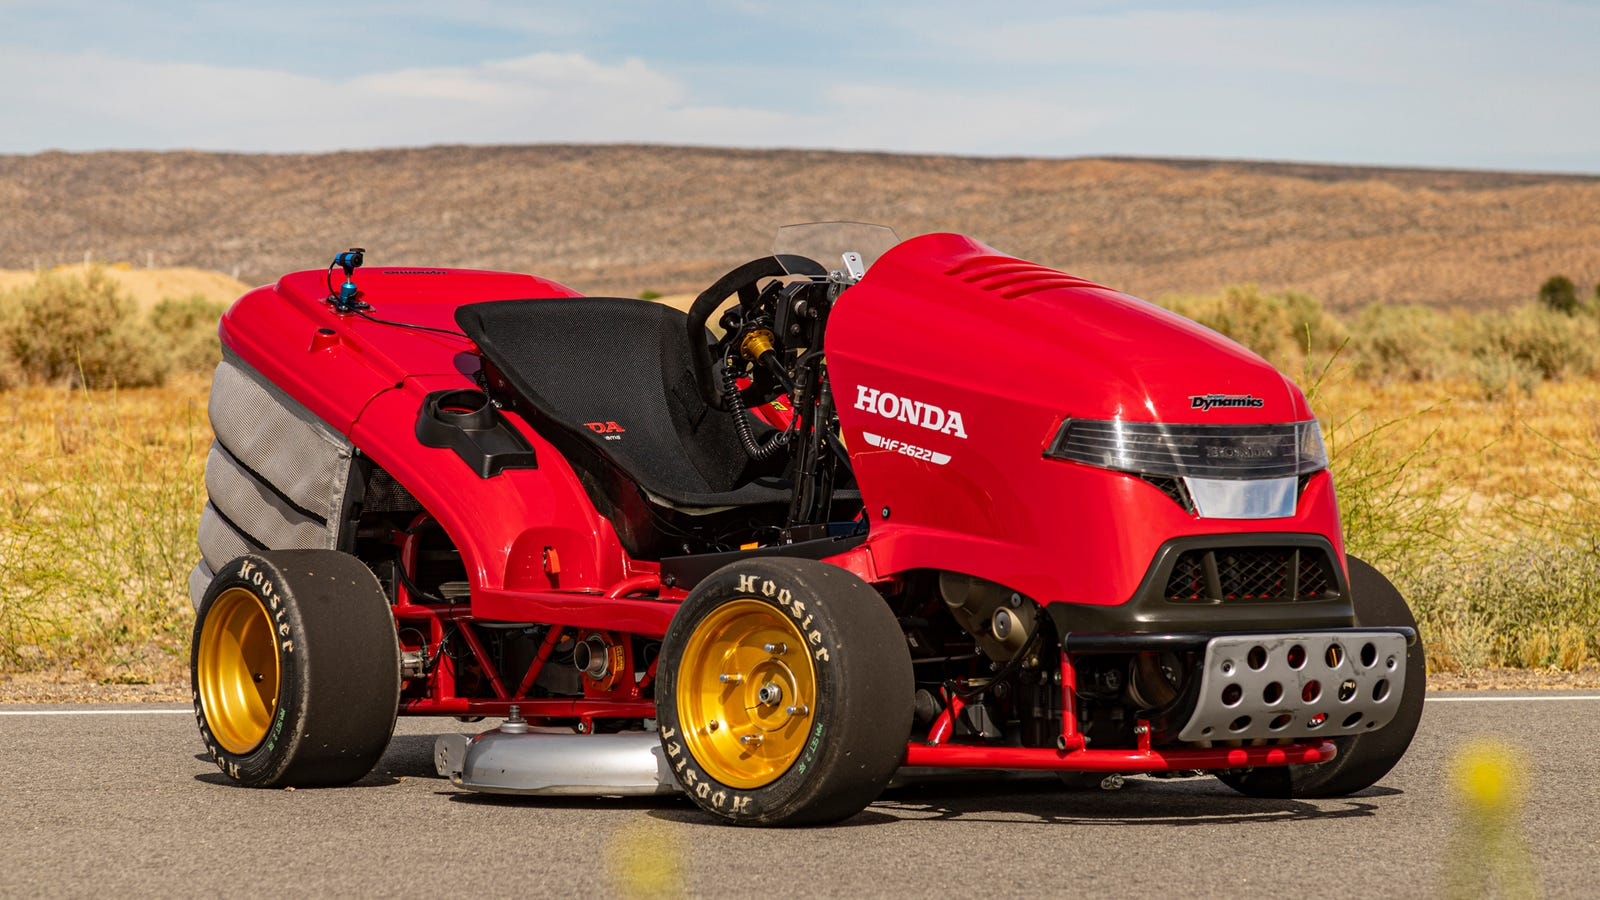 Illustration for article titled The Worlds Fastest Lawnmower Is Exactly as Bonkers to Drive as It Looks